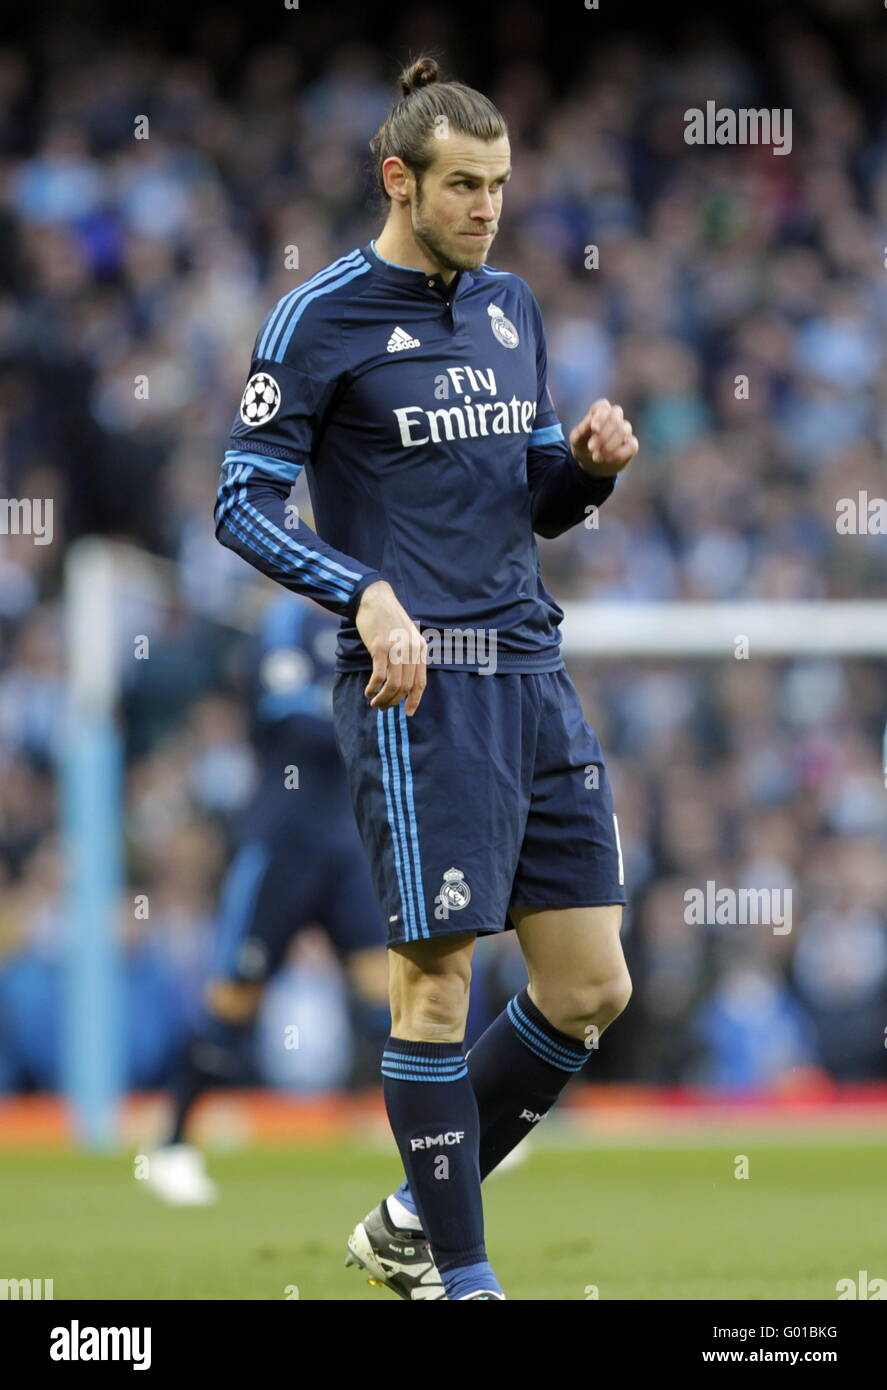 gareth bale real madrid stock photos gareth bale real madrid stock